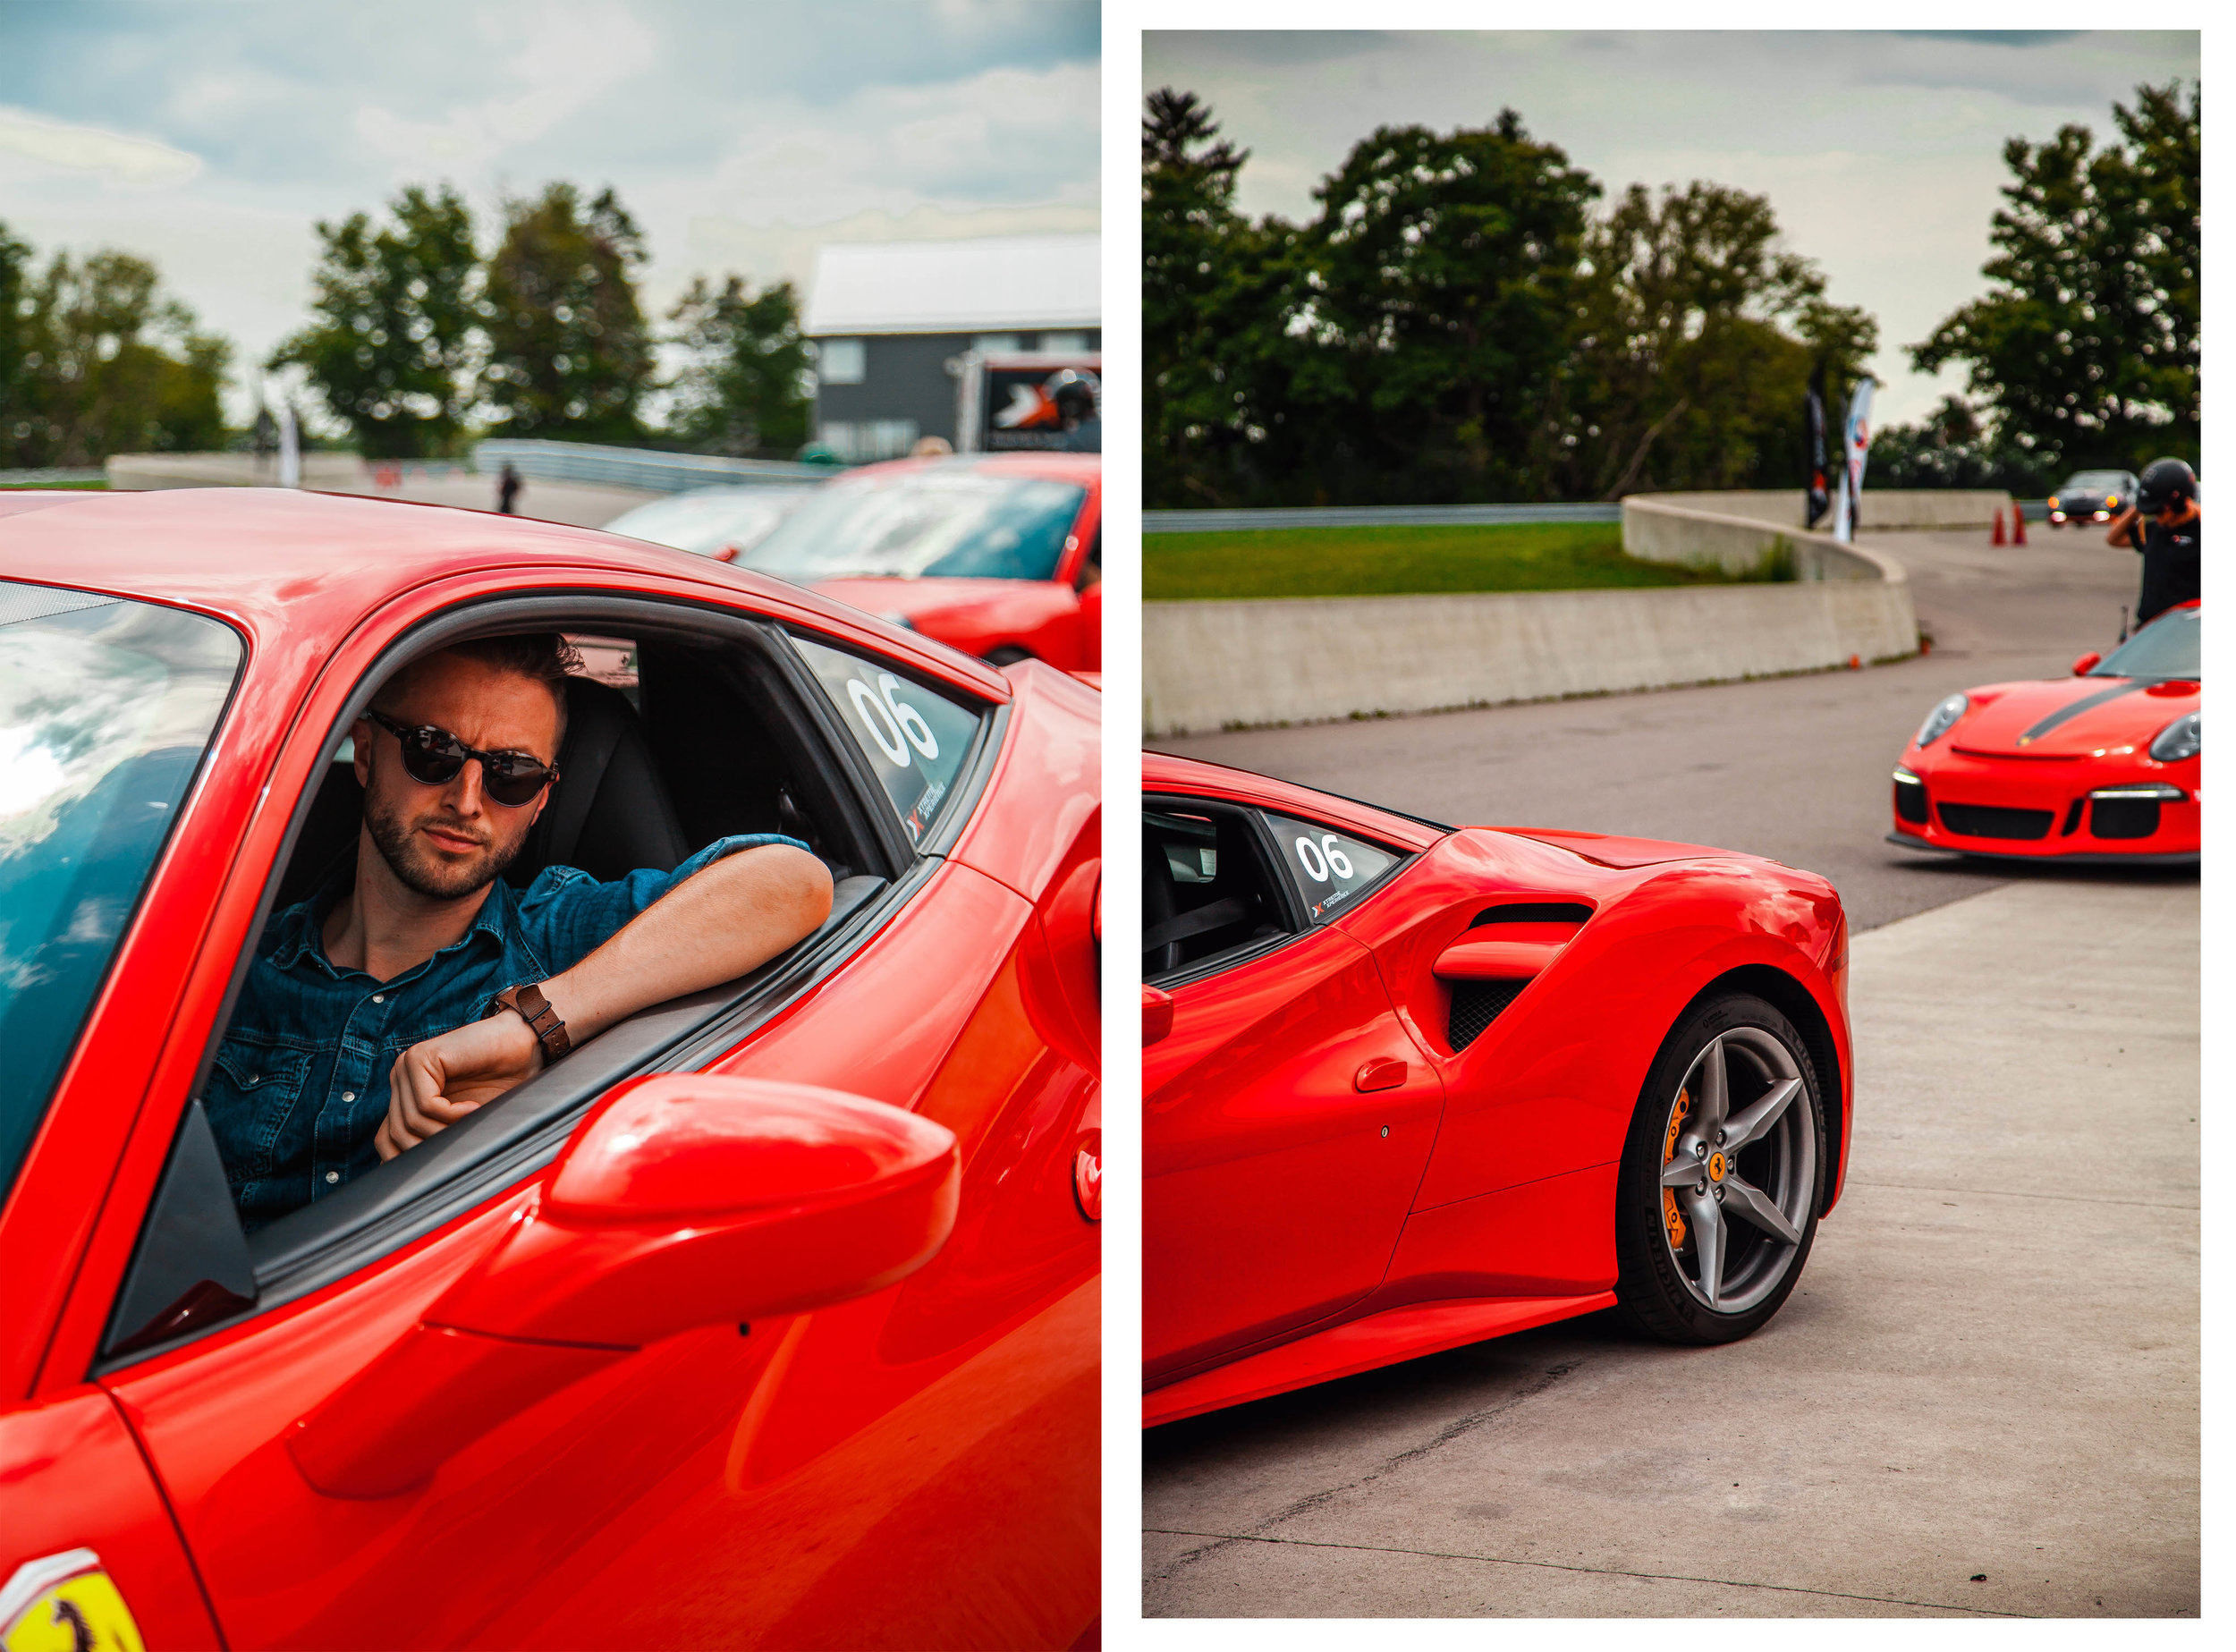 What-It's-Like-to-Drive-a-Ferrari-for-the-first-time2.jpg